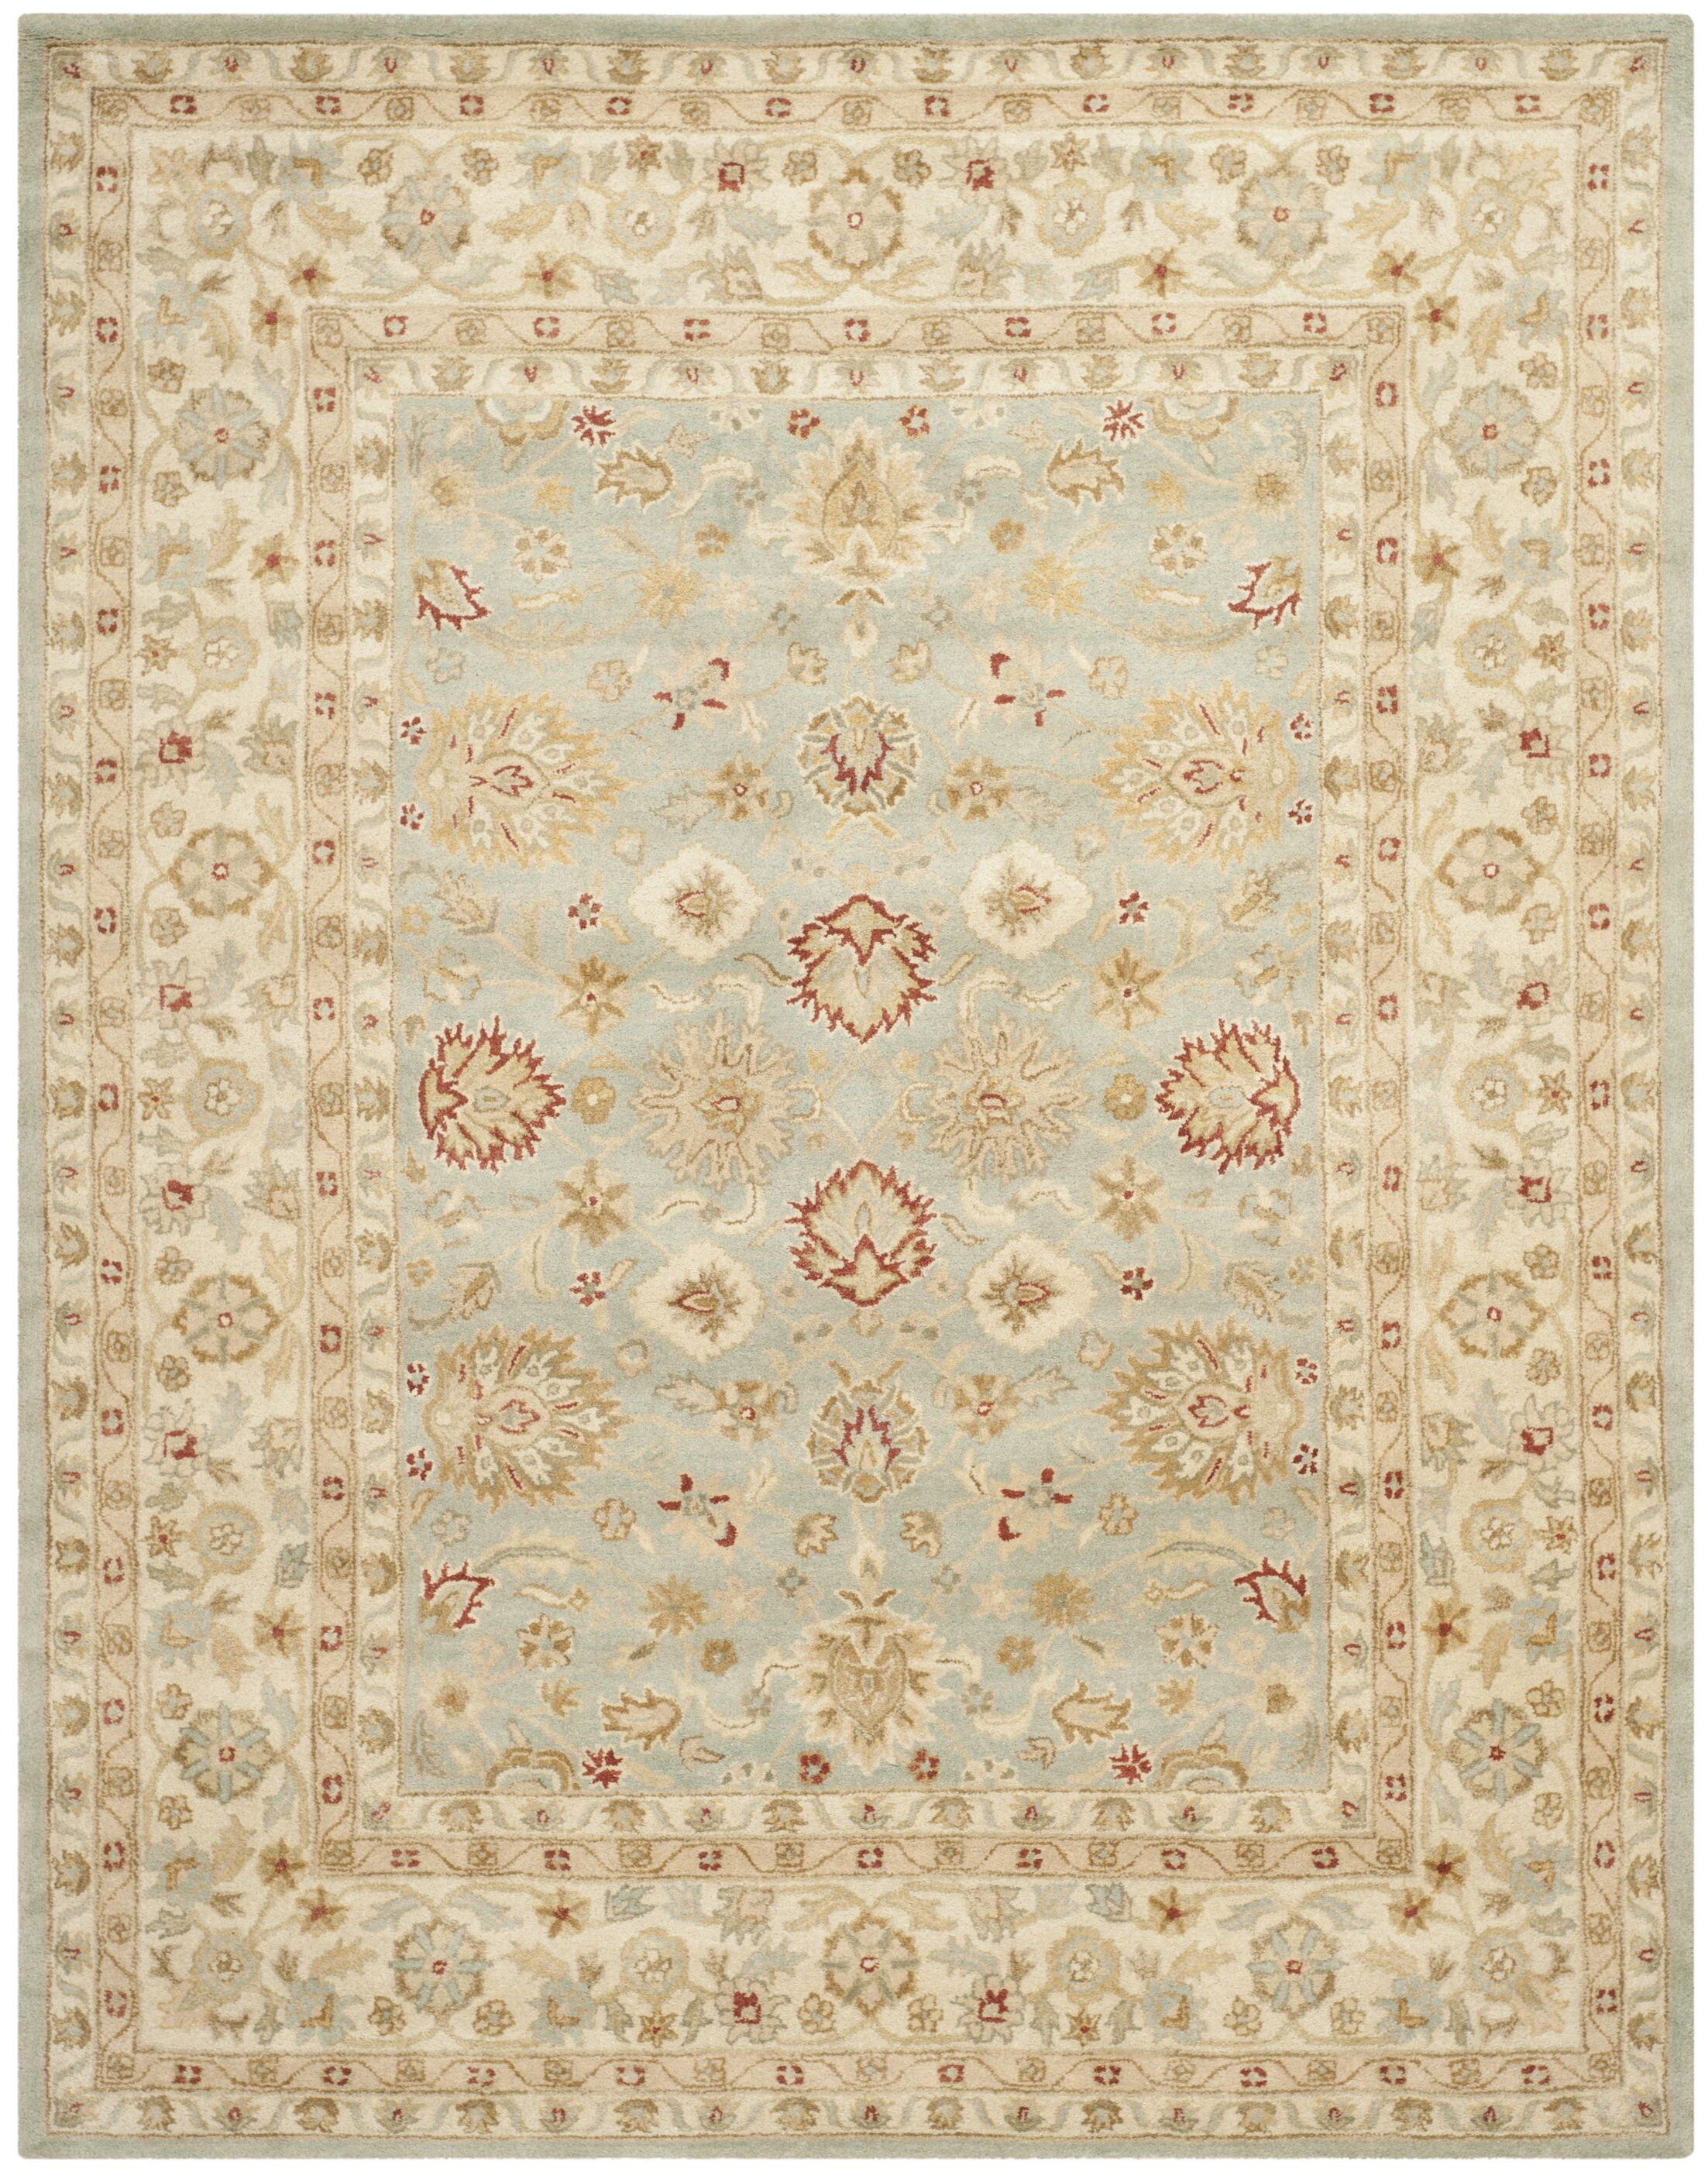 Otwell Gray/Blue/Beige Area Rug Rug Size: 3' x 5'